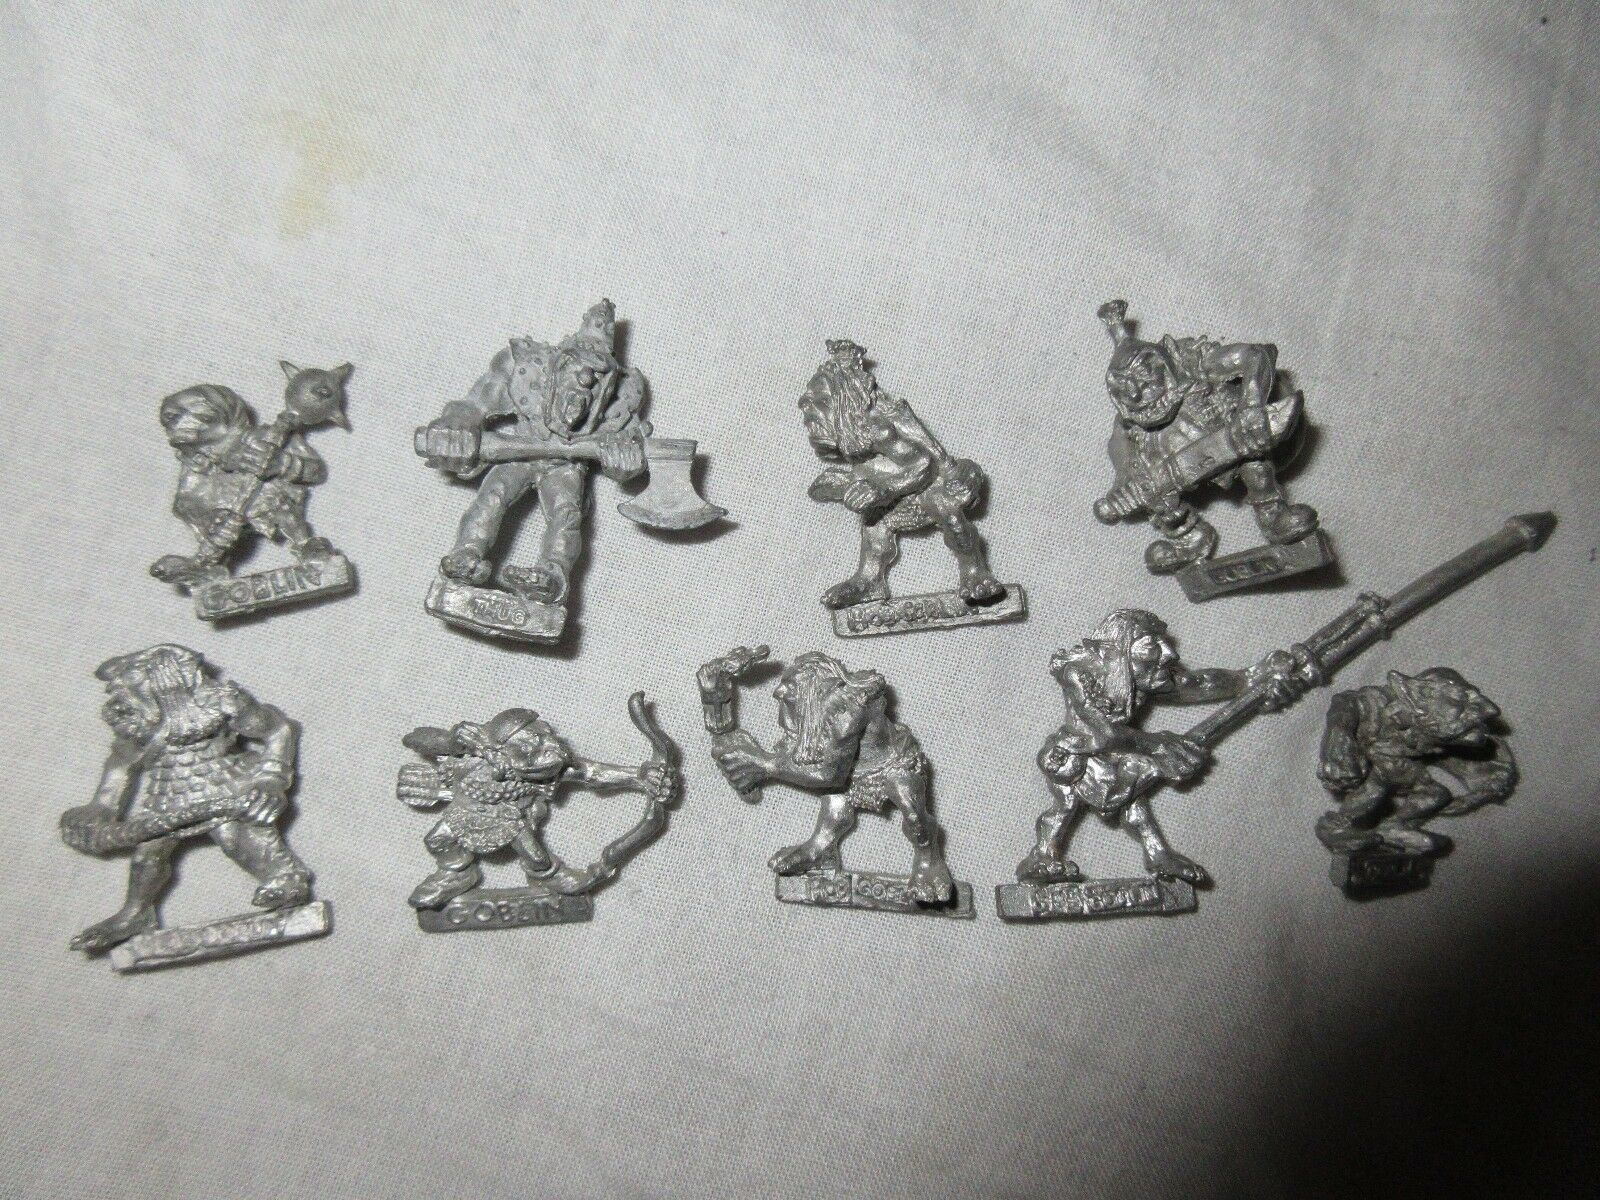 Hobgoblin goblin mix joblot Army marauder  games workshop